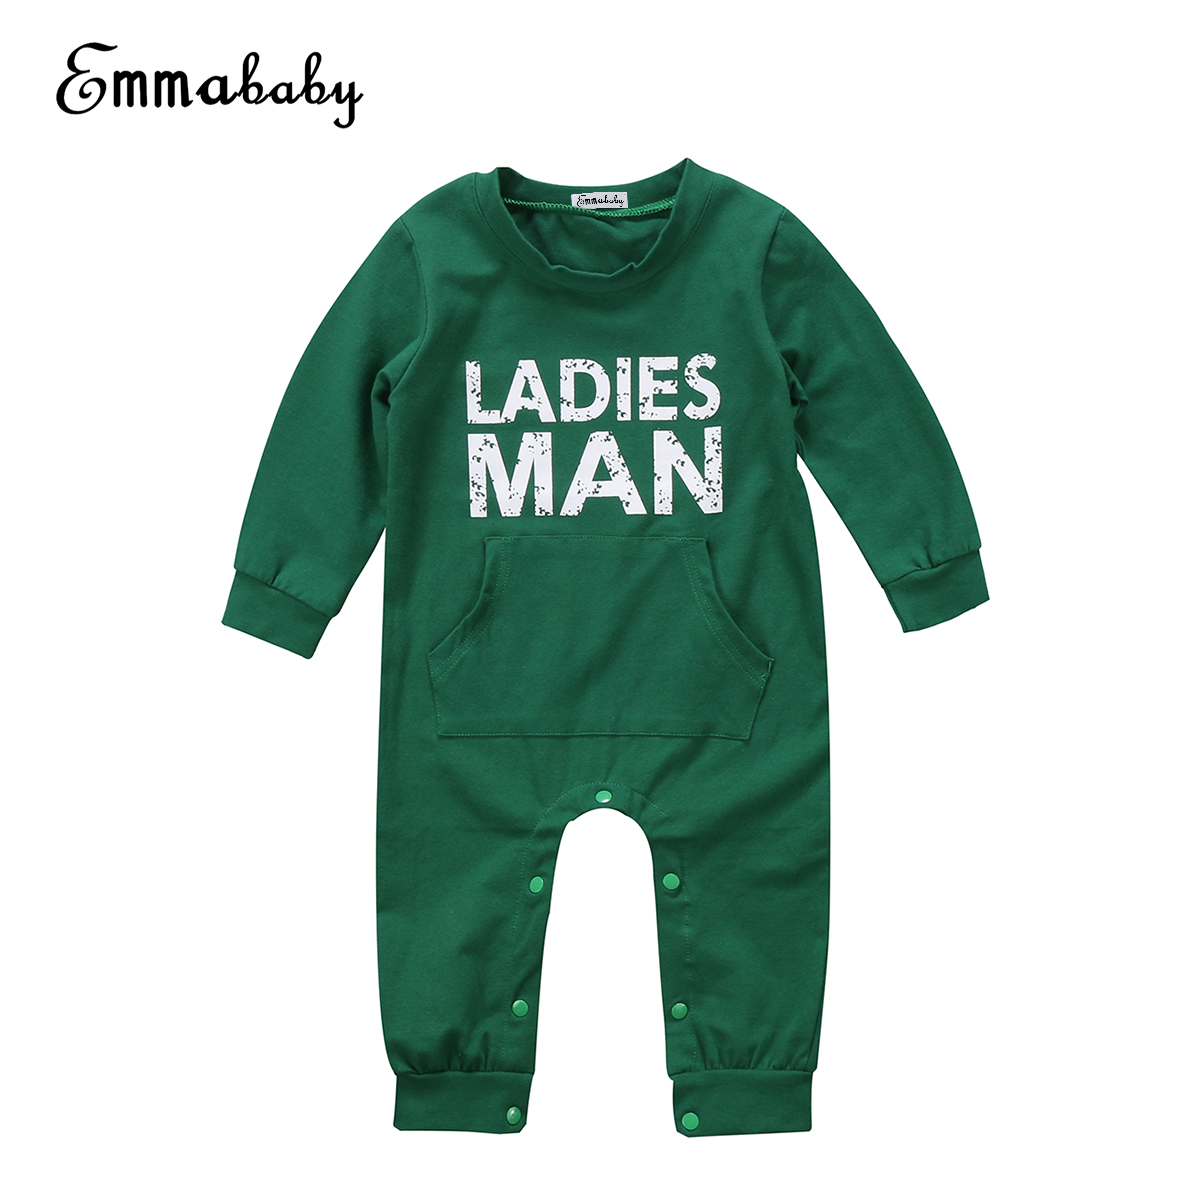 Summer new casual kid green rompers Top Baby Kids Newborn fashion Boy Infant long sleeve Romper Jumpsuit cute kid Clothes Outfit